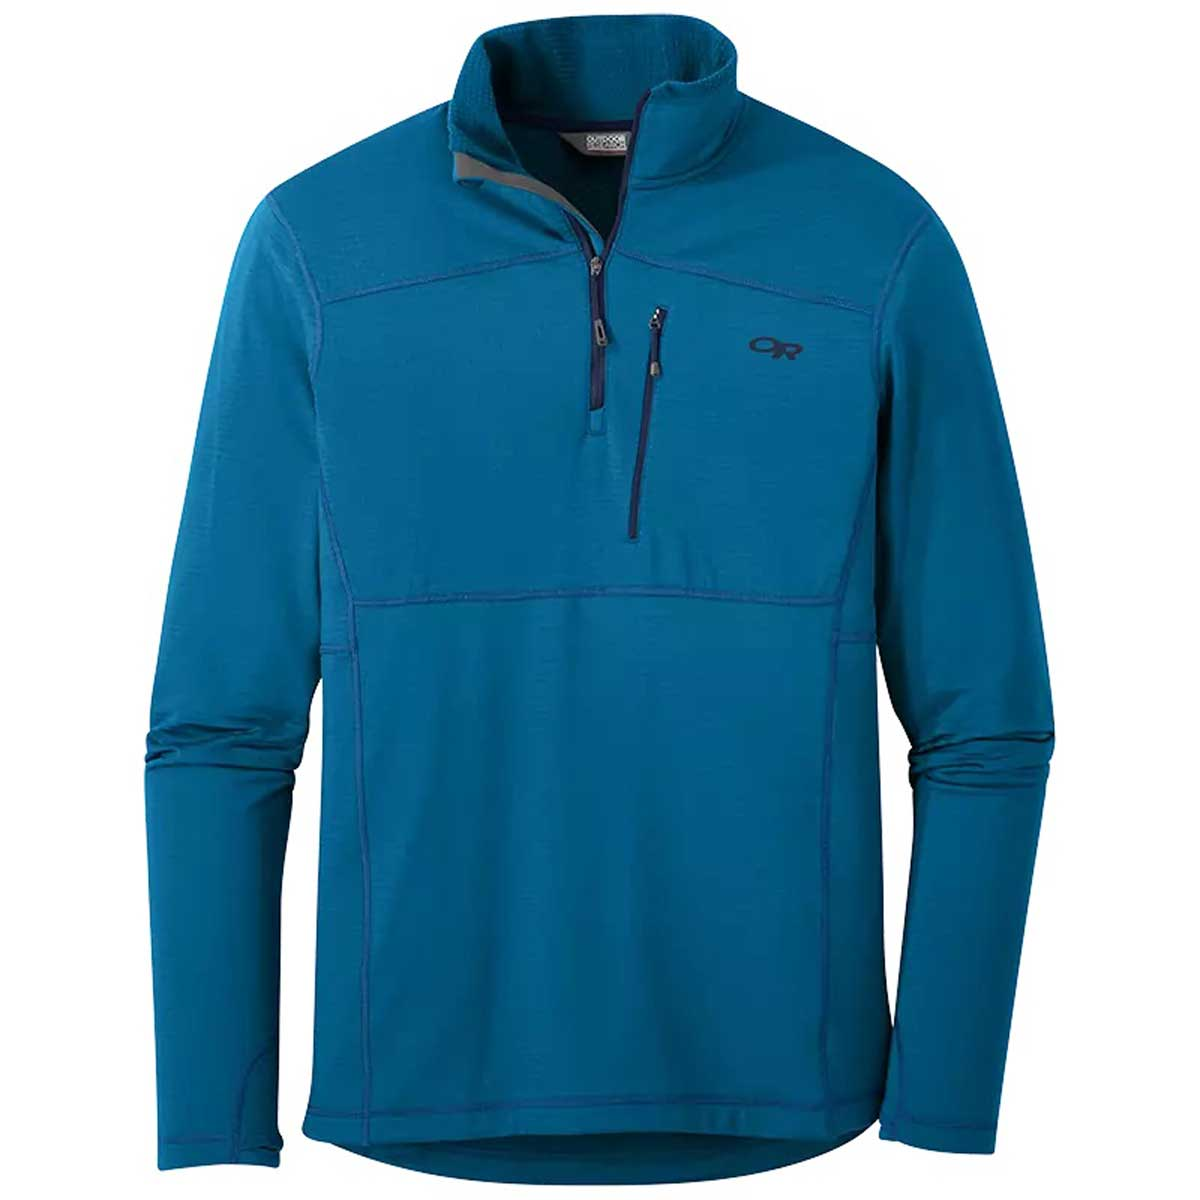 Outdoor Research Vigor 1/4 Zip Men's Top in Cascade